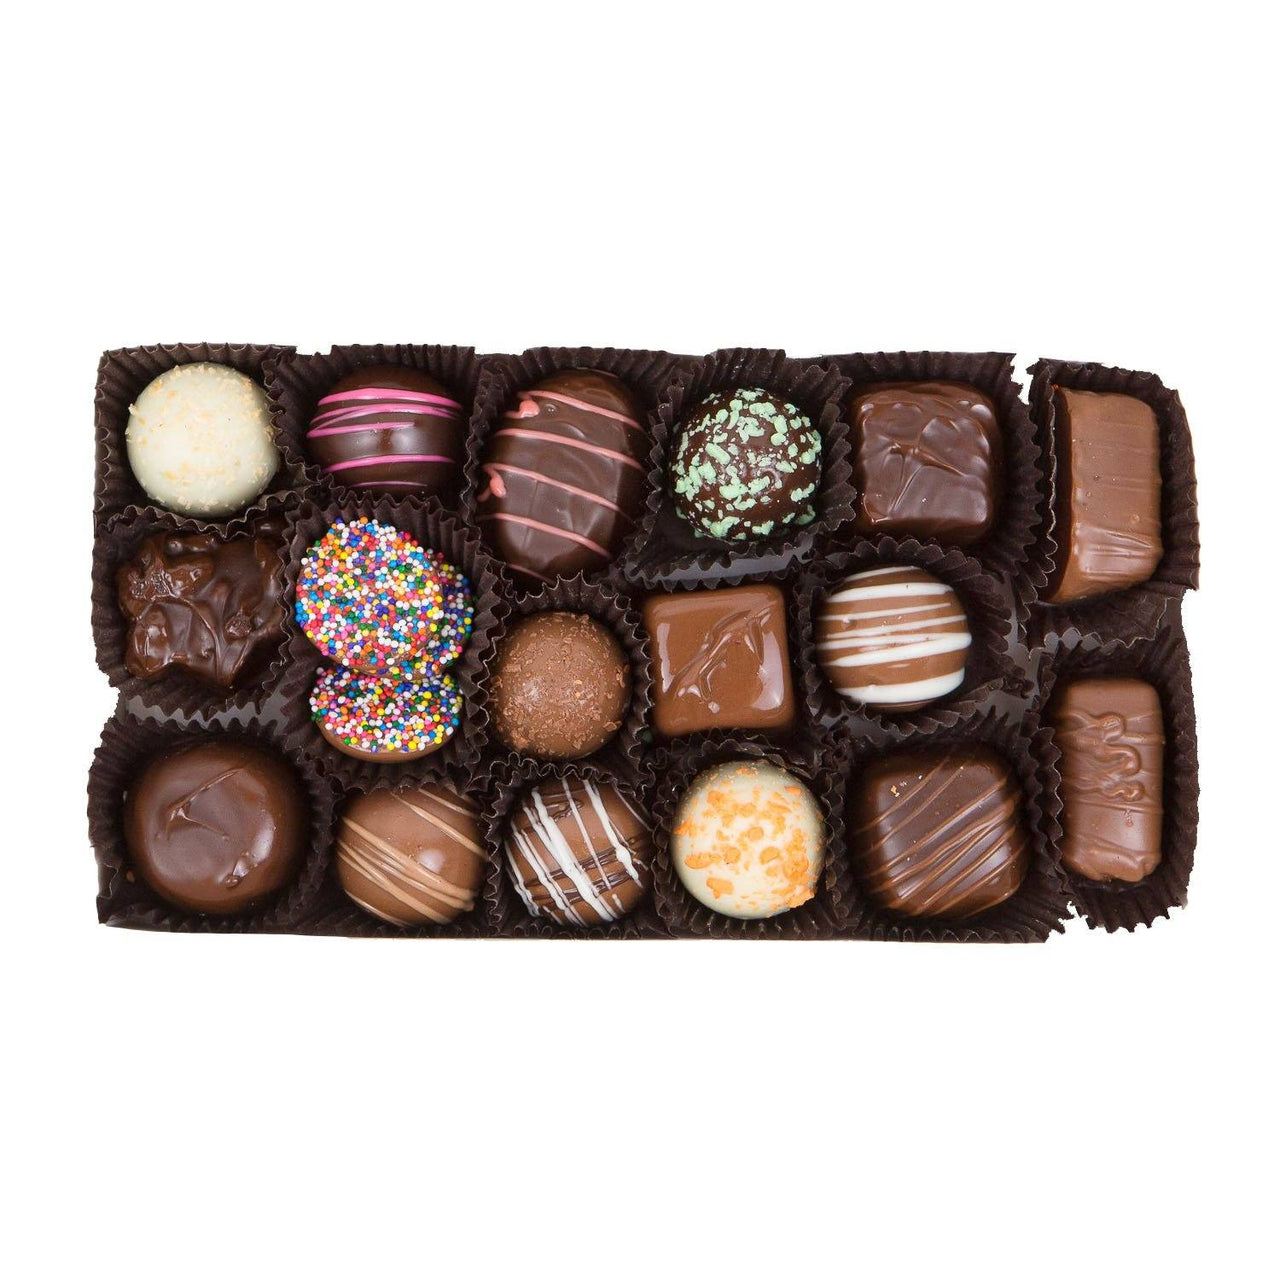 Gifts for Women - Assorted Chocolate Gift Box - Jackie's Chocolate